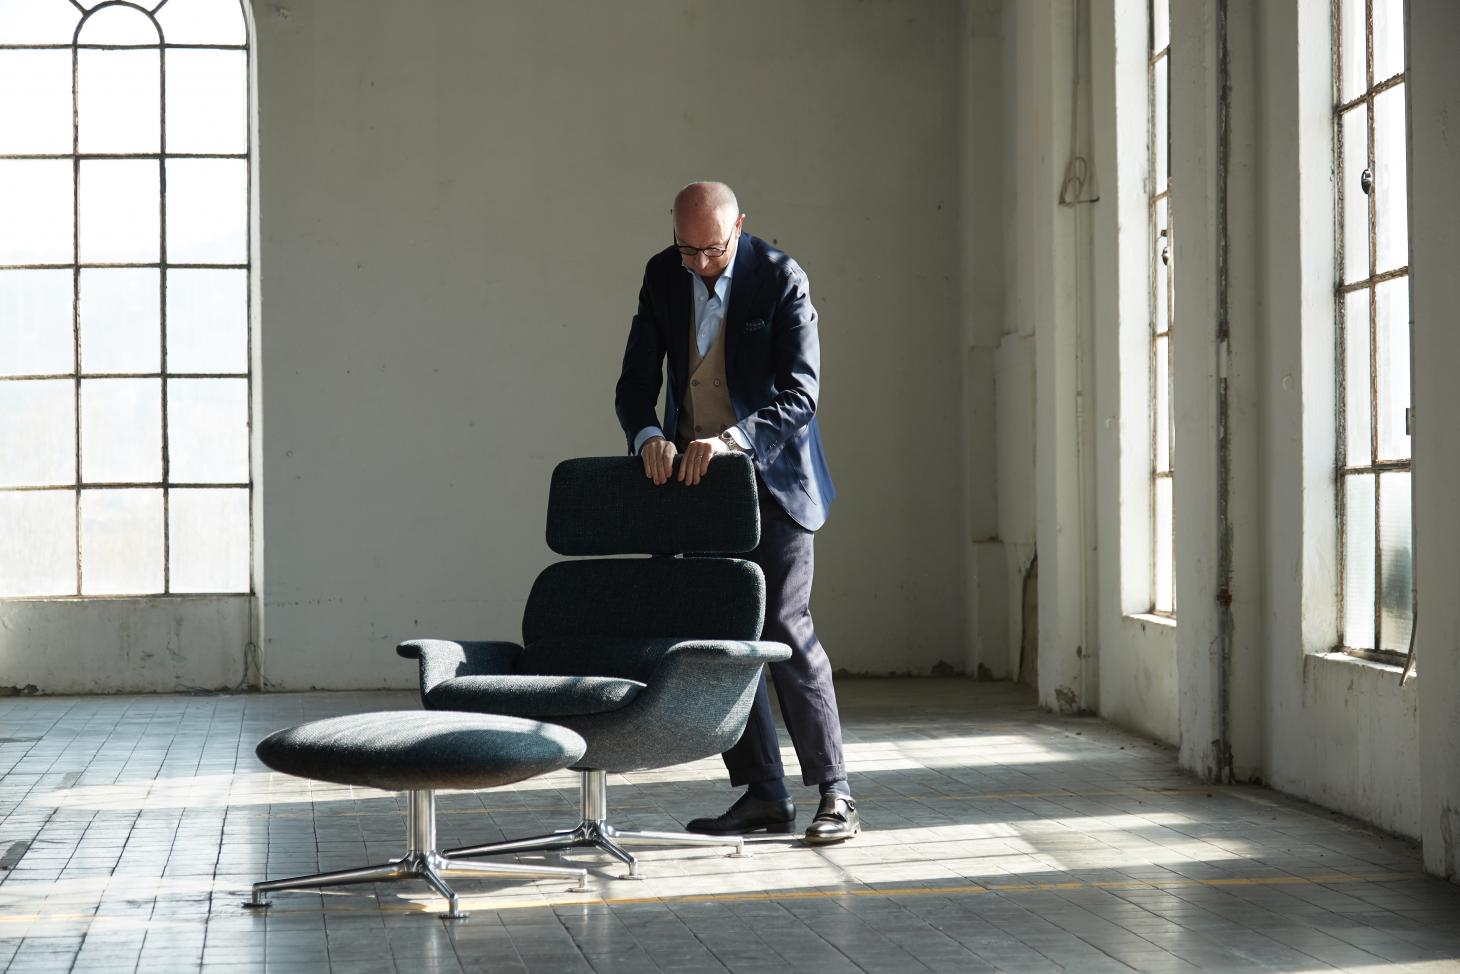 Piero Lissoni with his KN02 armchair for Knoll